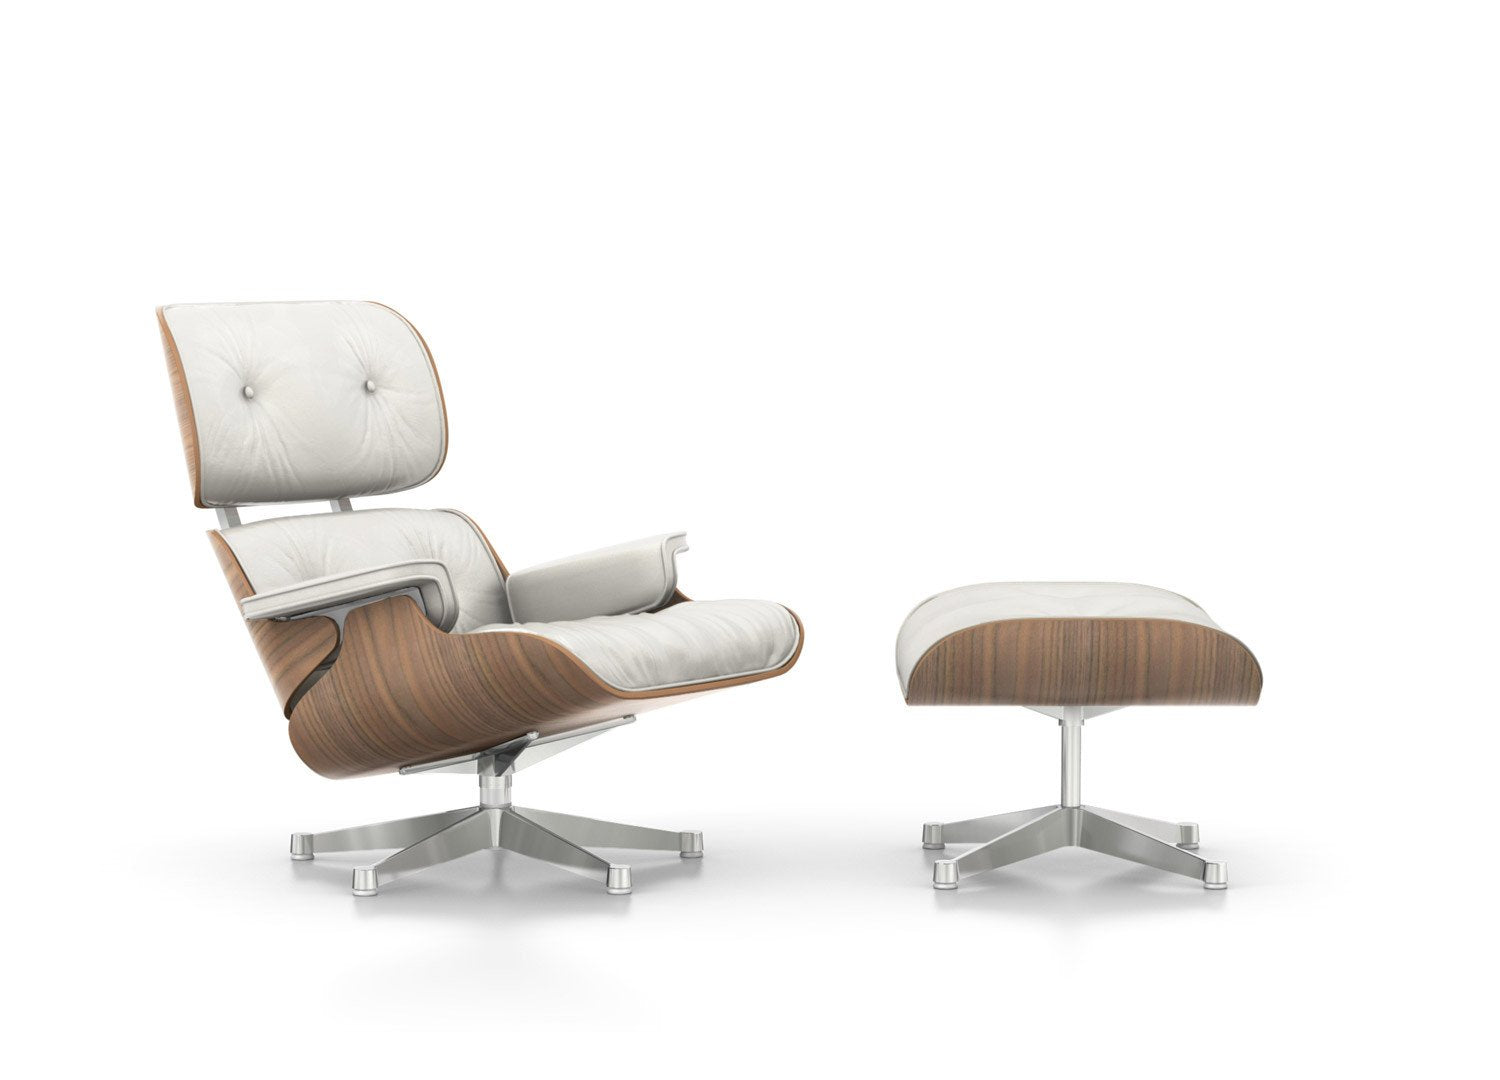 Prime Eames Lounge Chair White Version Evergreenethics Interior Chair Design Evergreenethicsorg